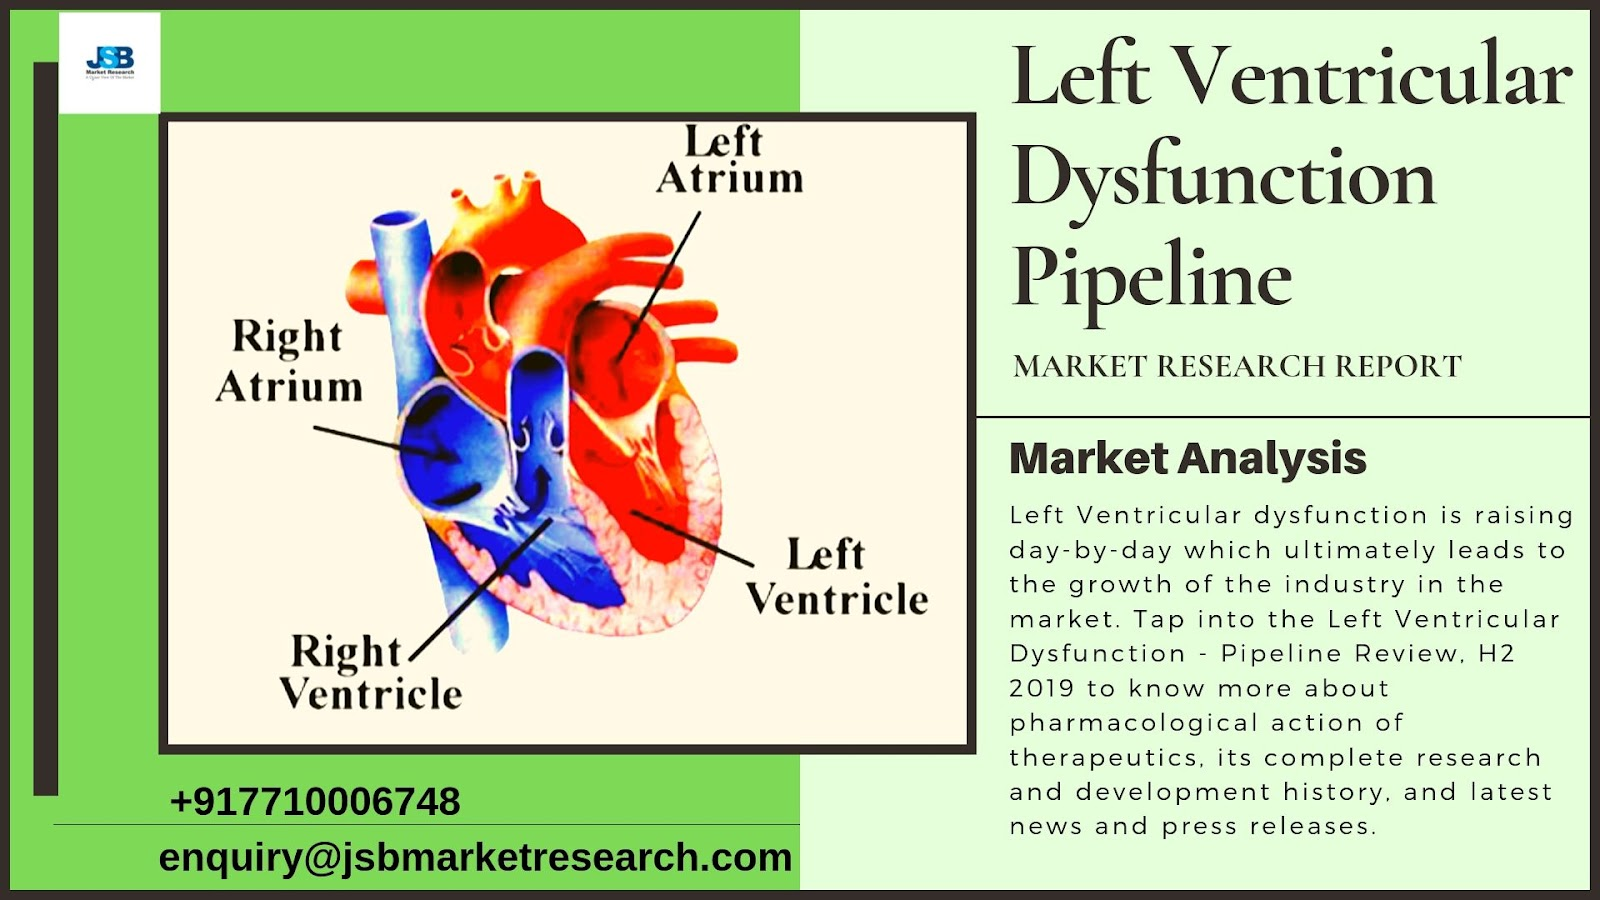 Left  Ventricular Dysfunction Pipeline Market Report